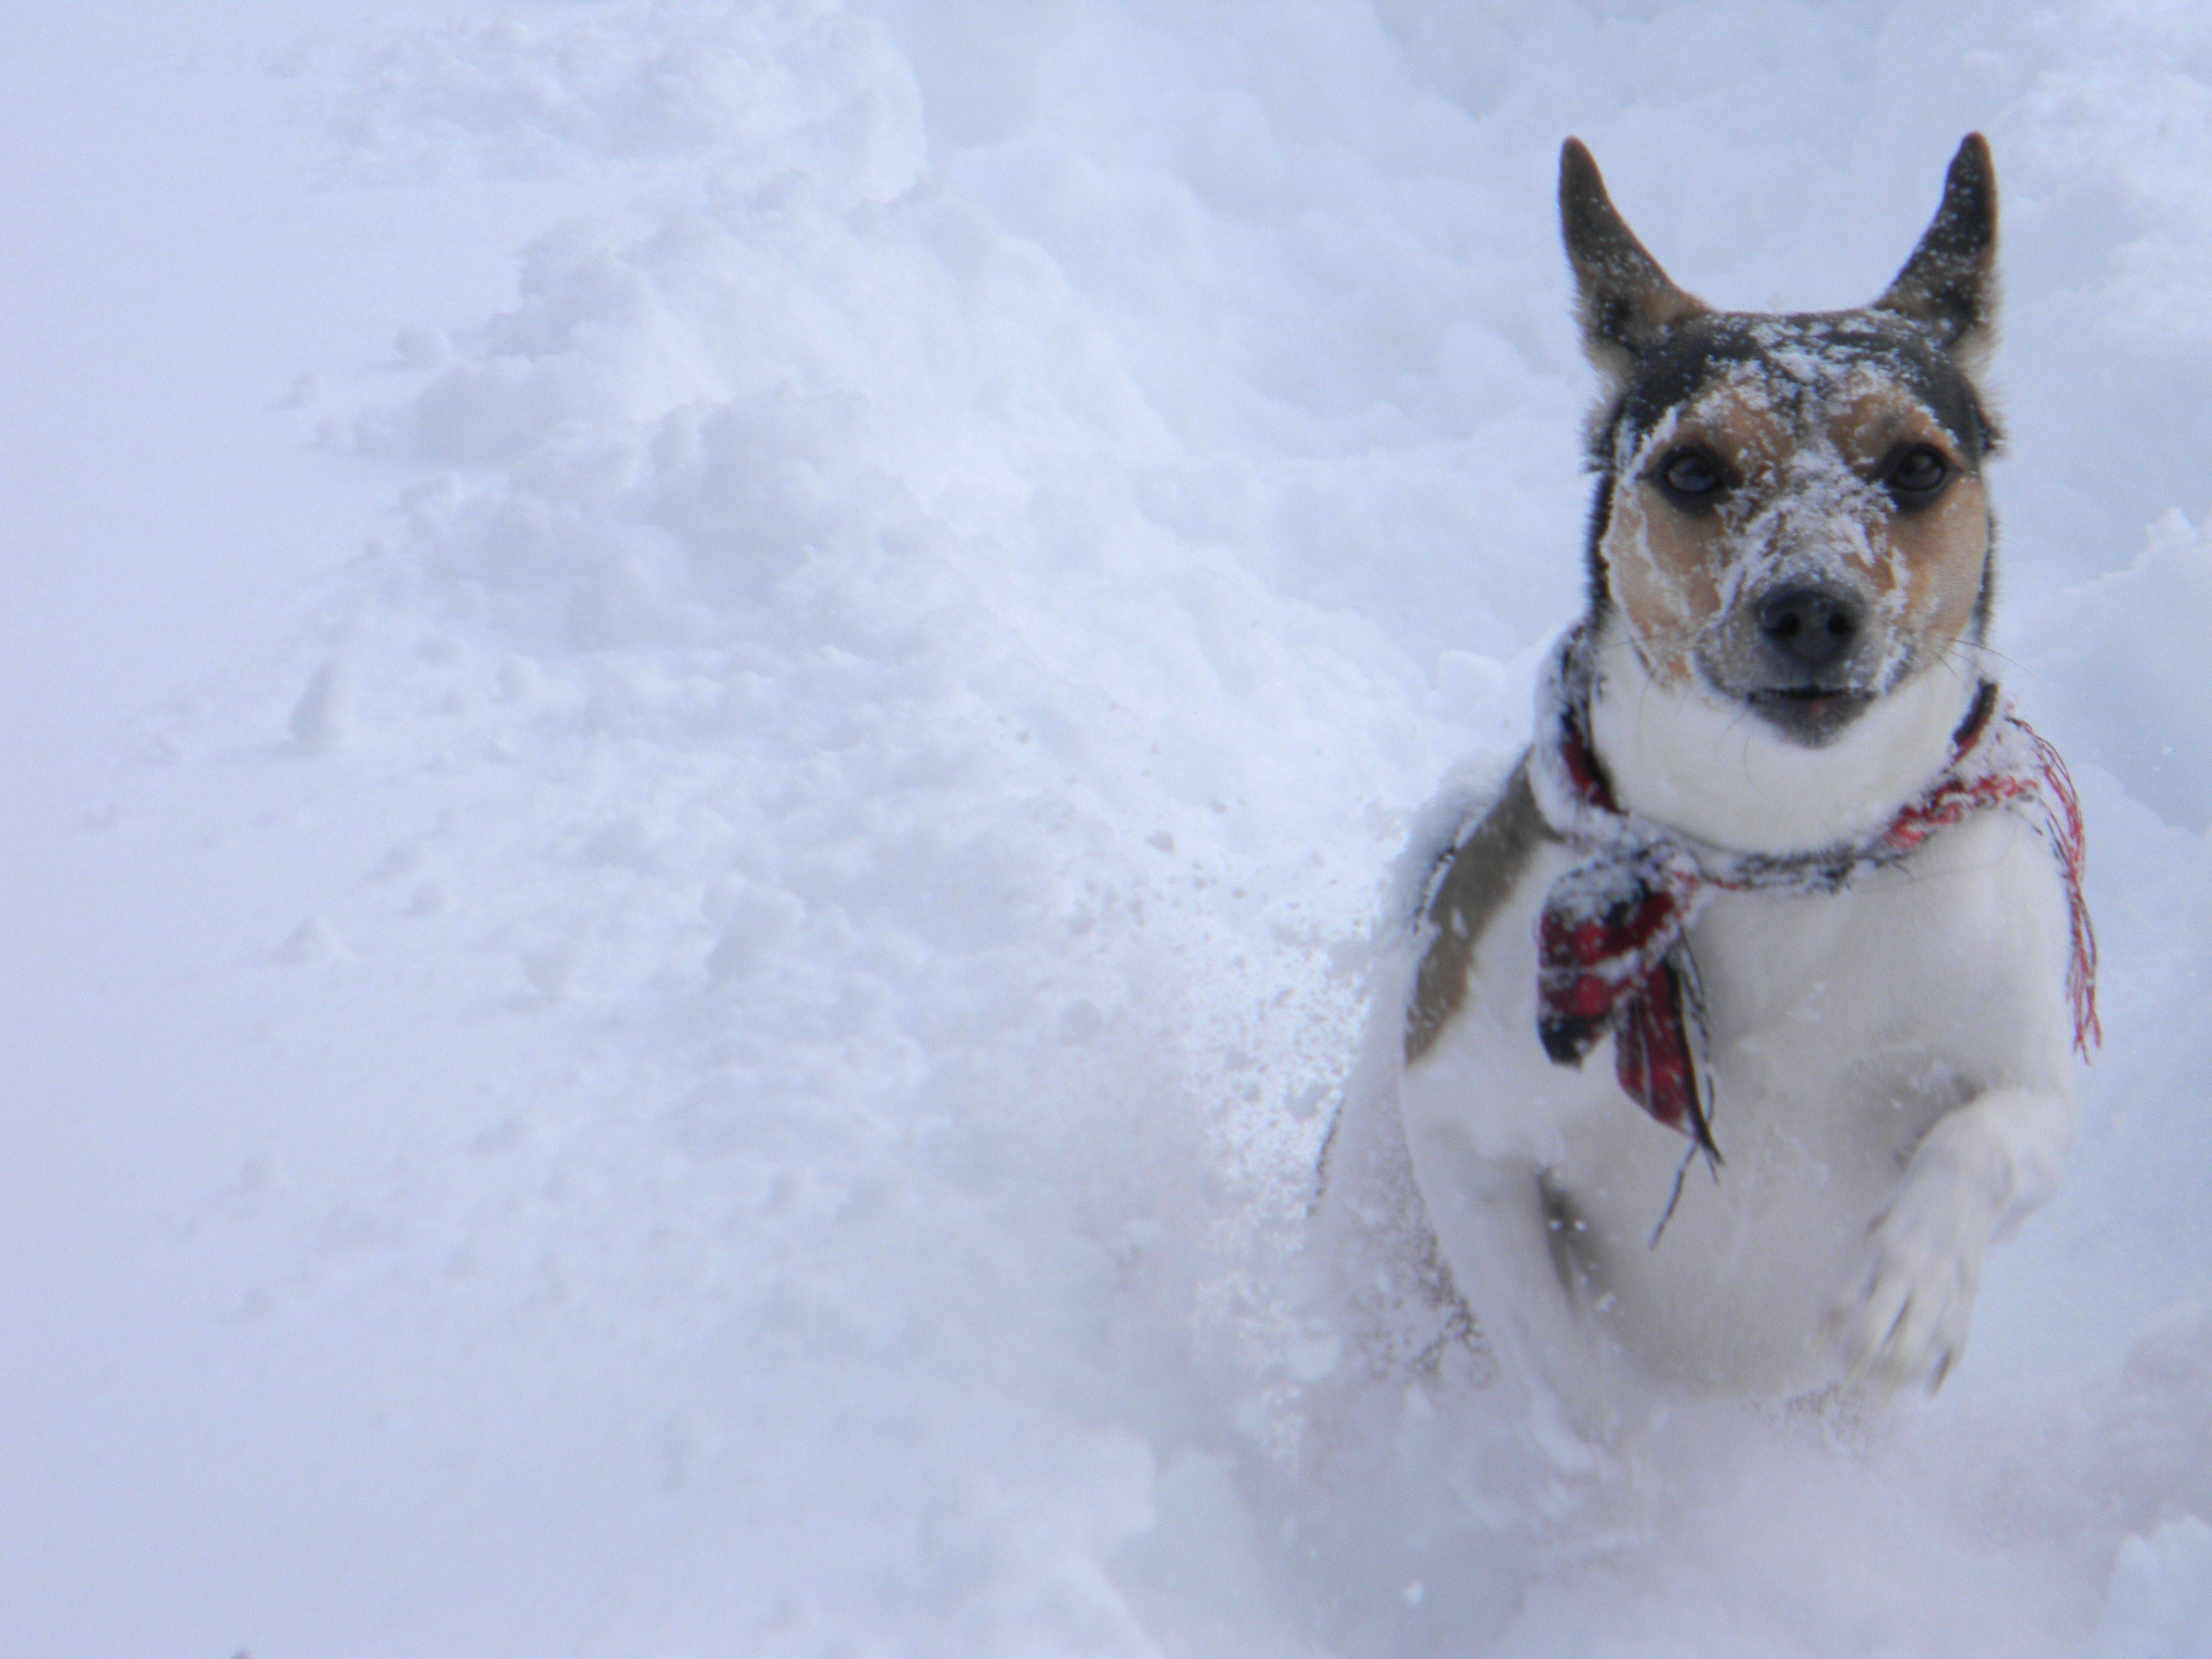 My rat terrier Alvin enjoying the snow.